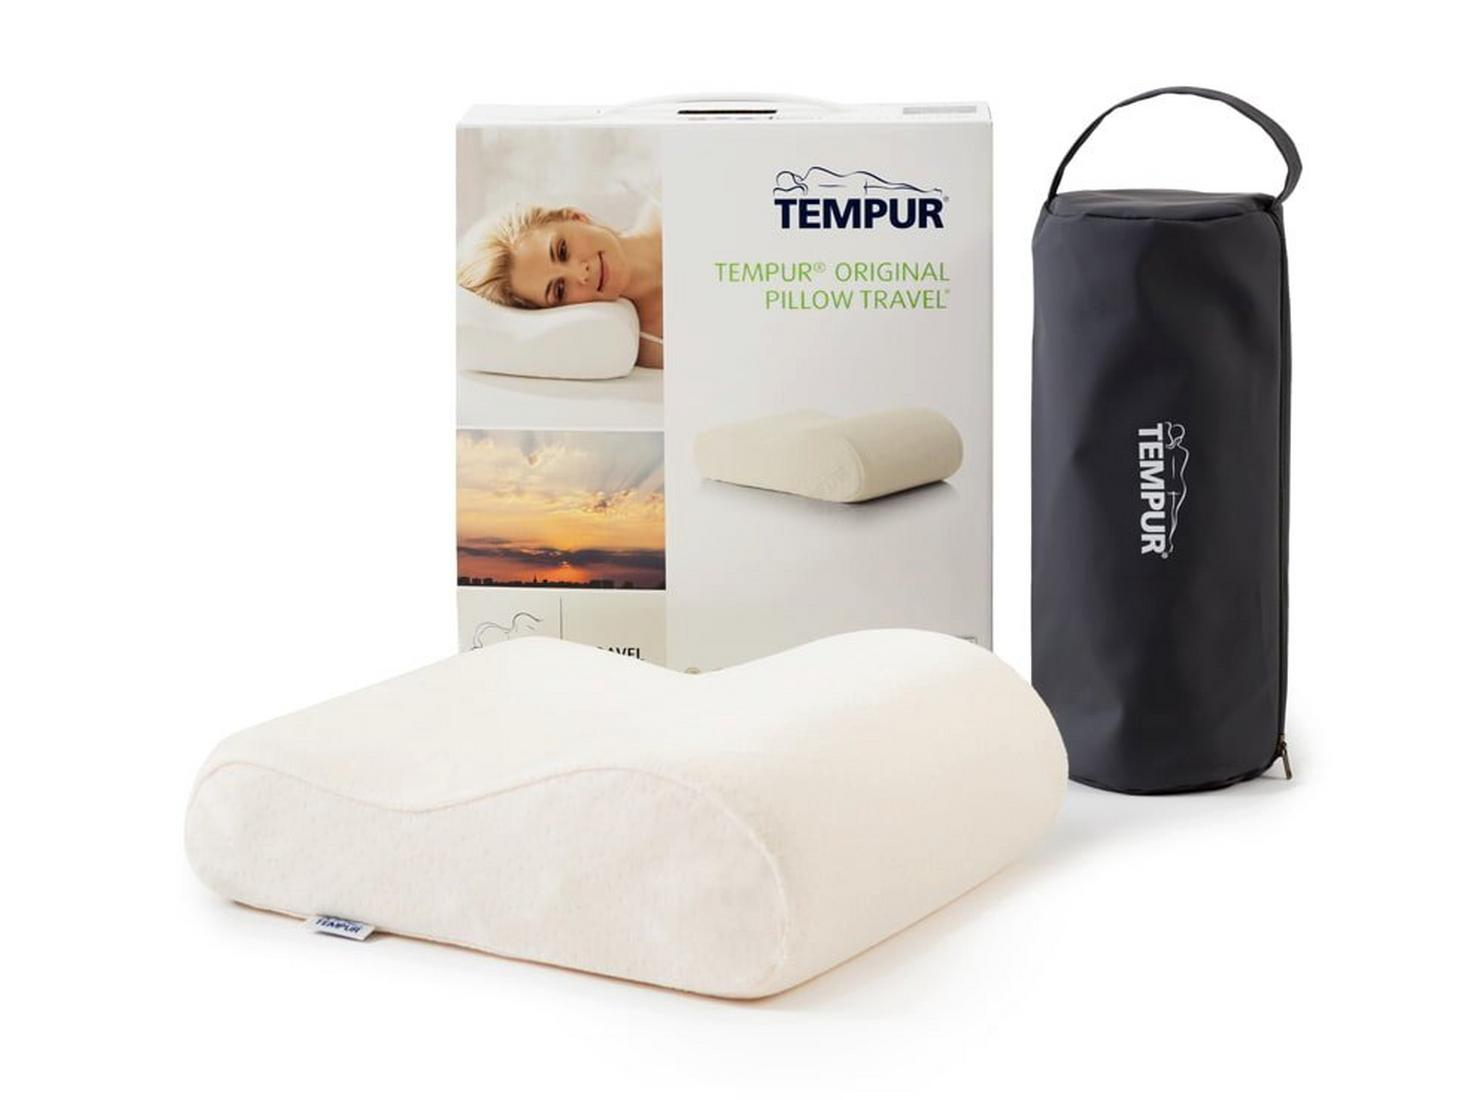 Tempur travel pillow is perfect for